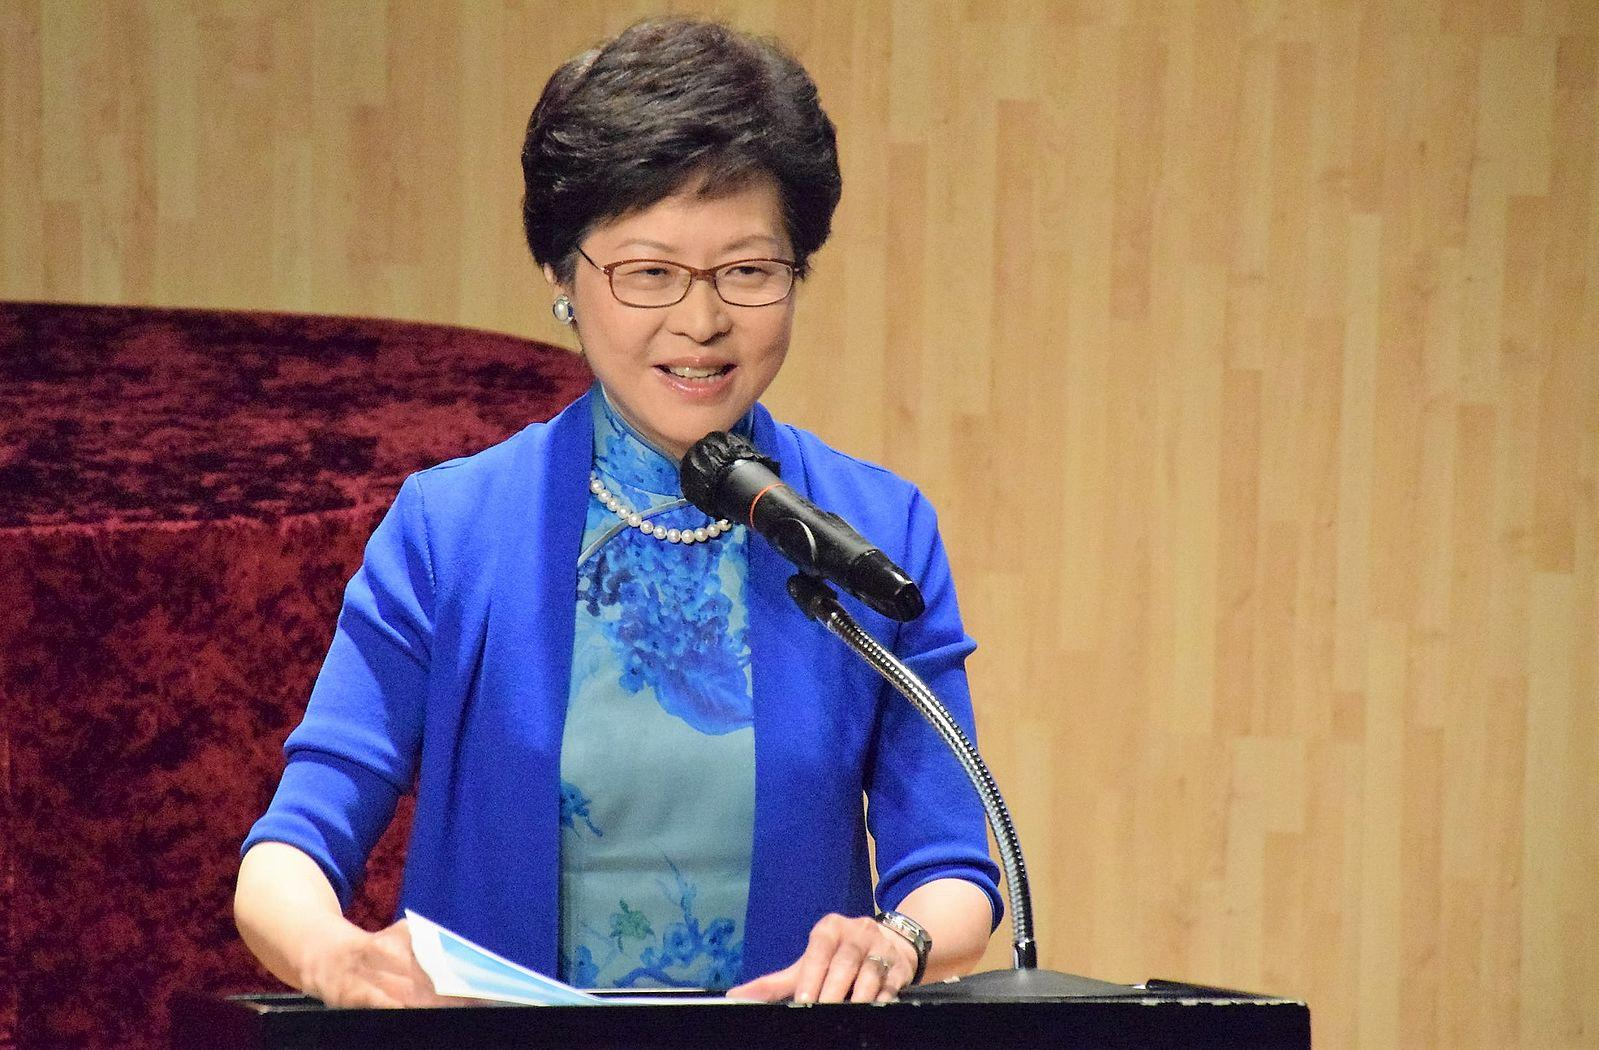 Passing the extradition law is now an issue of prestige for Carrie Lam and China. (Image: wikimedia / CC0 1.0)